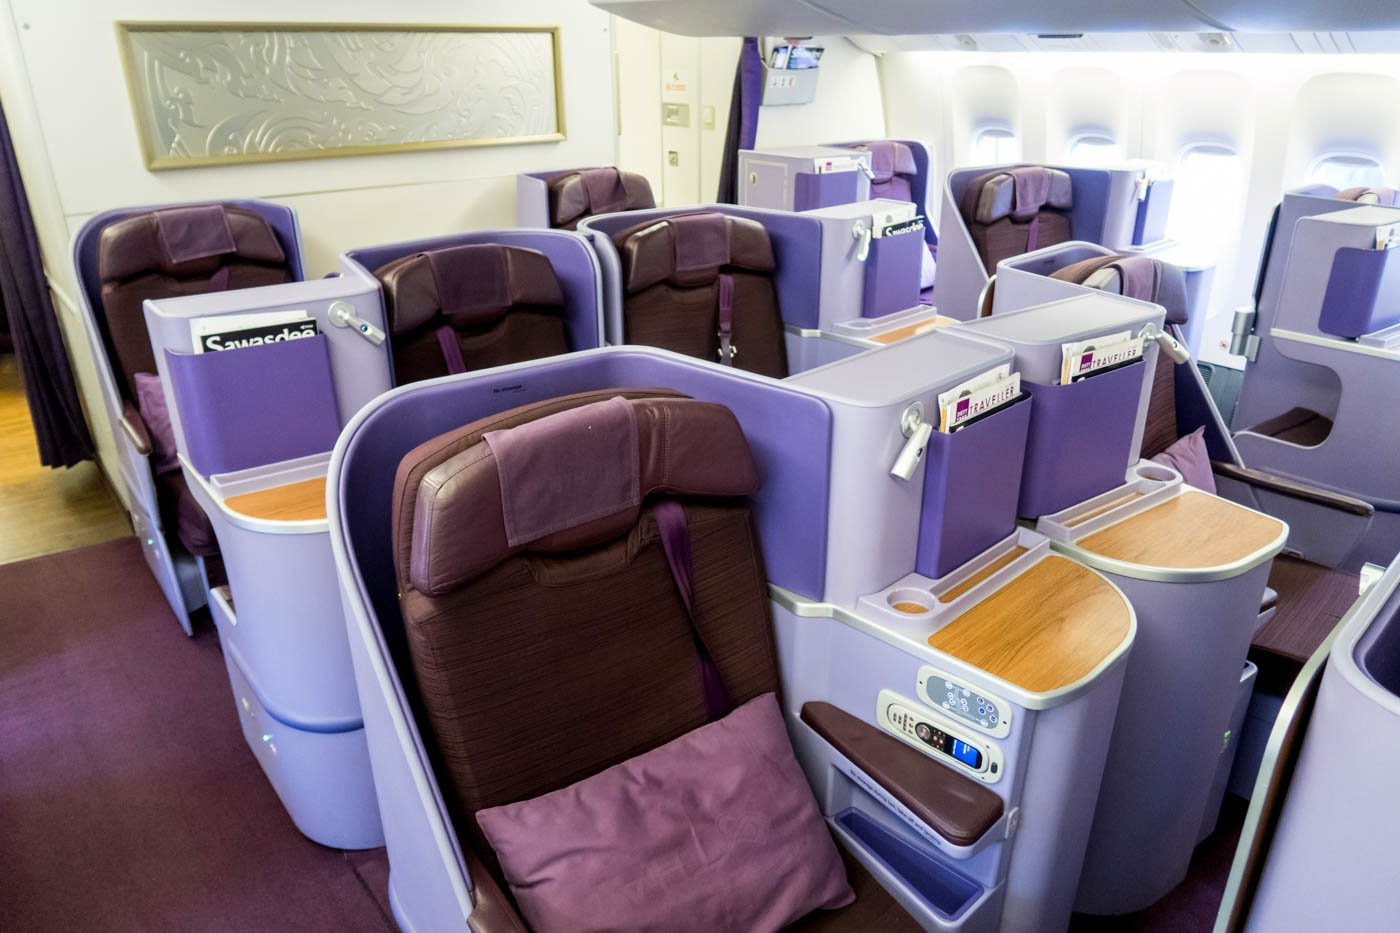 Thai Airways 777-300ER Business Class Seats